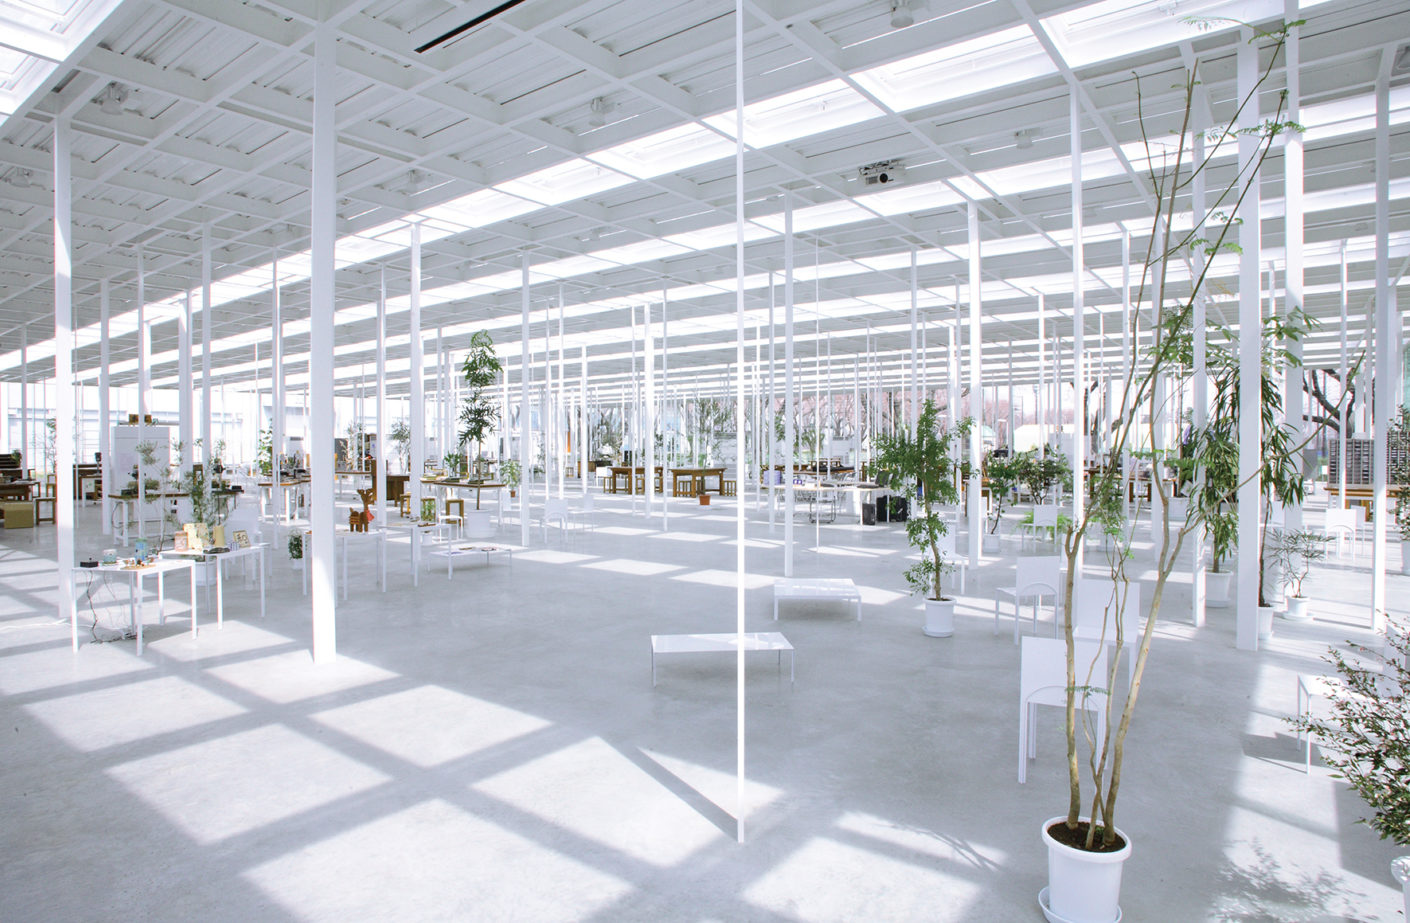 At the Kanagawa Institute of Technology's KAIT workshop, which Ishigami built in 2008, the roof rests on 300 slender supports.